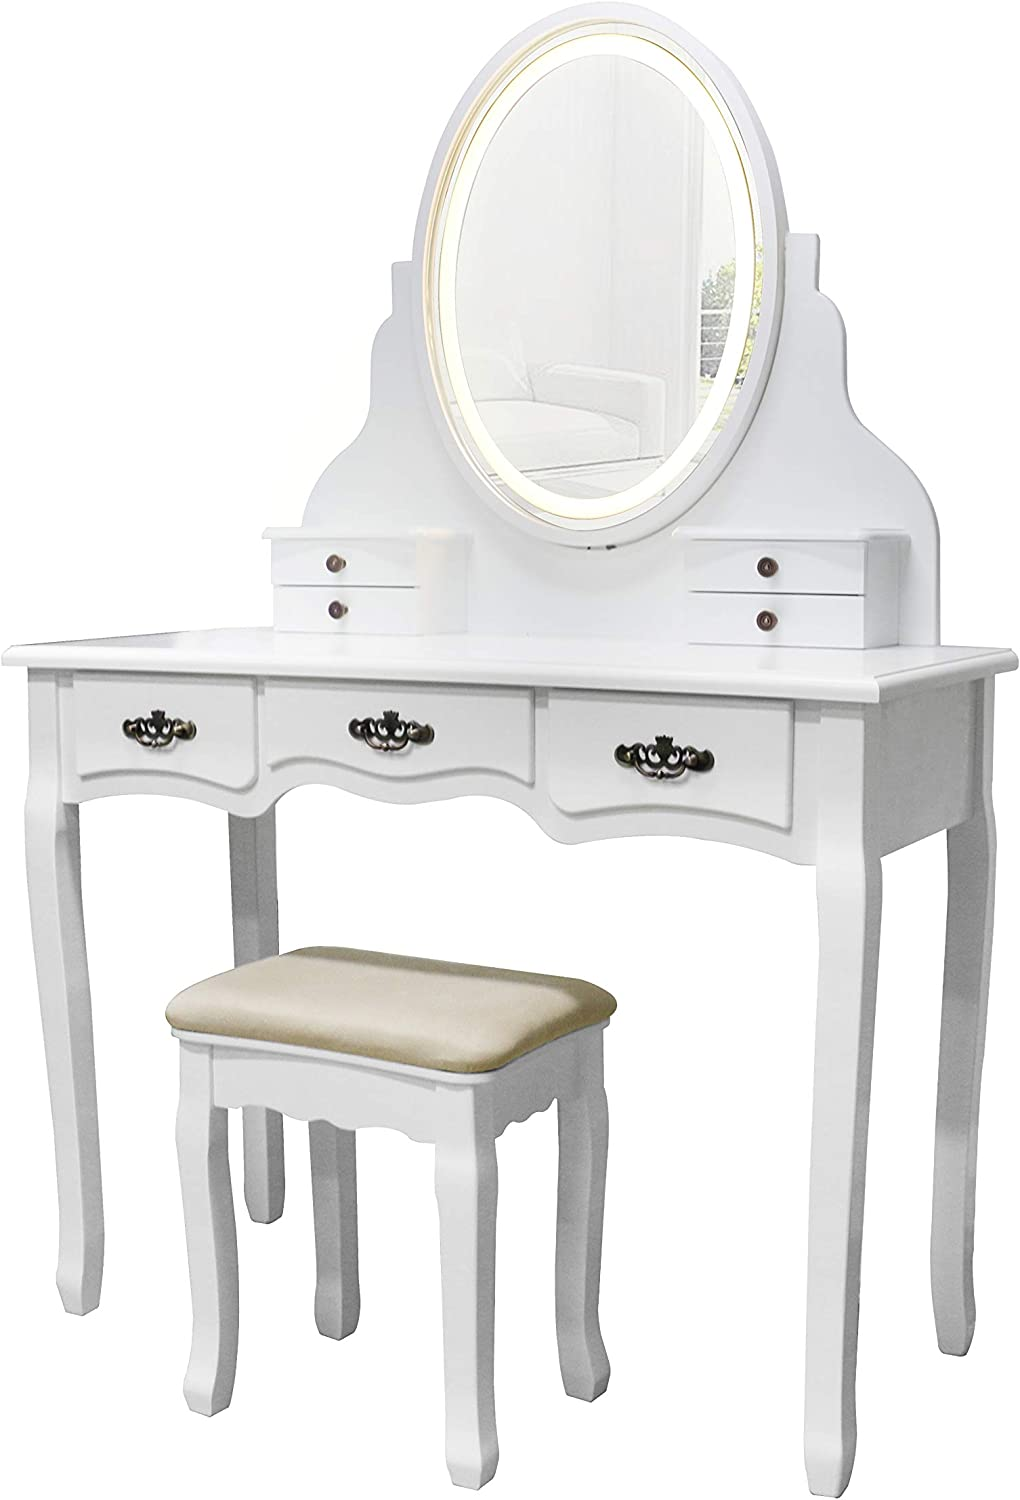 YOUKE Vanity Set,Oval Single Mirror Dressing Table with LED Light and Plug,7 Drwers,Cushioned Stool for Girl and Lady, White